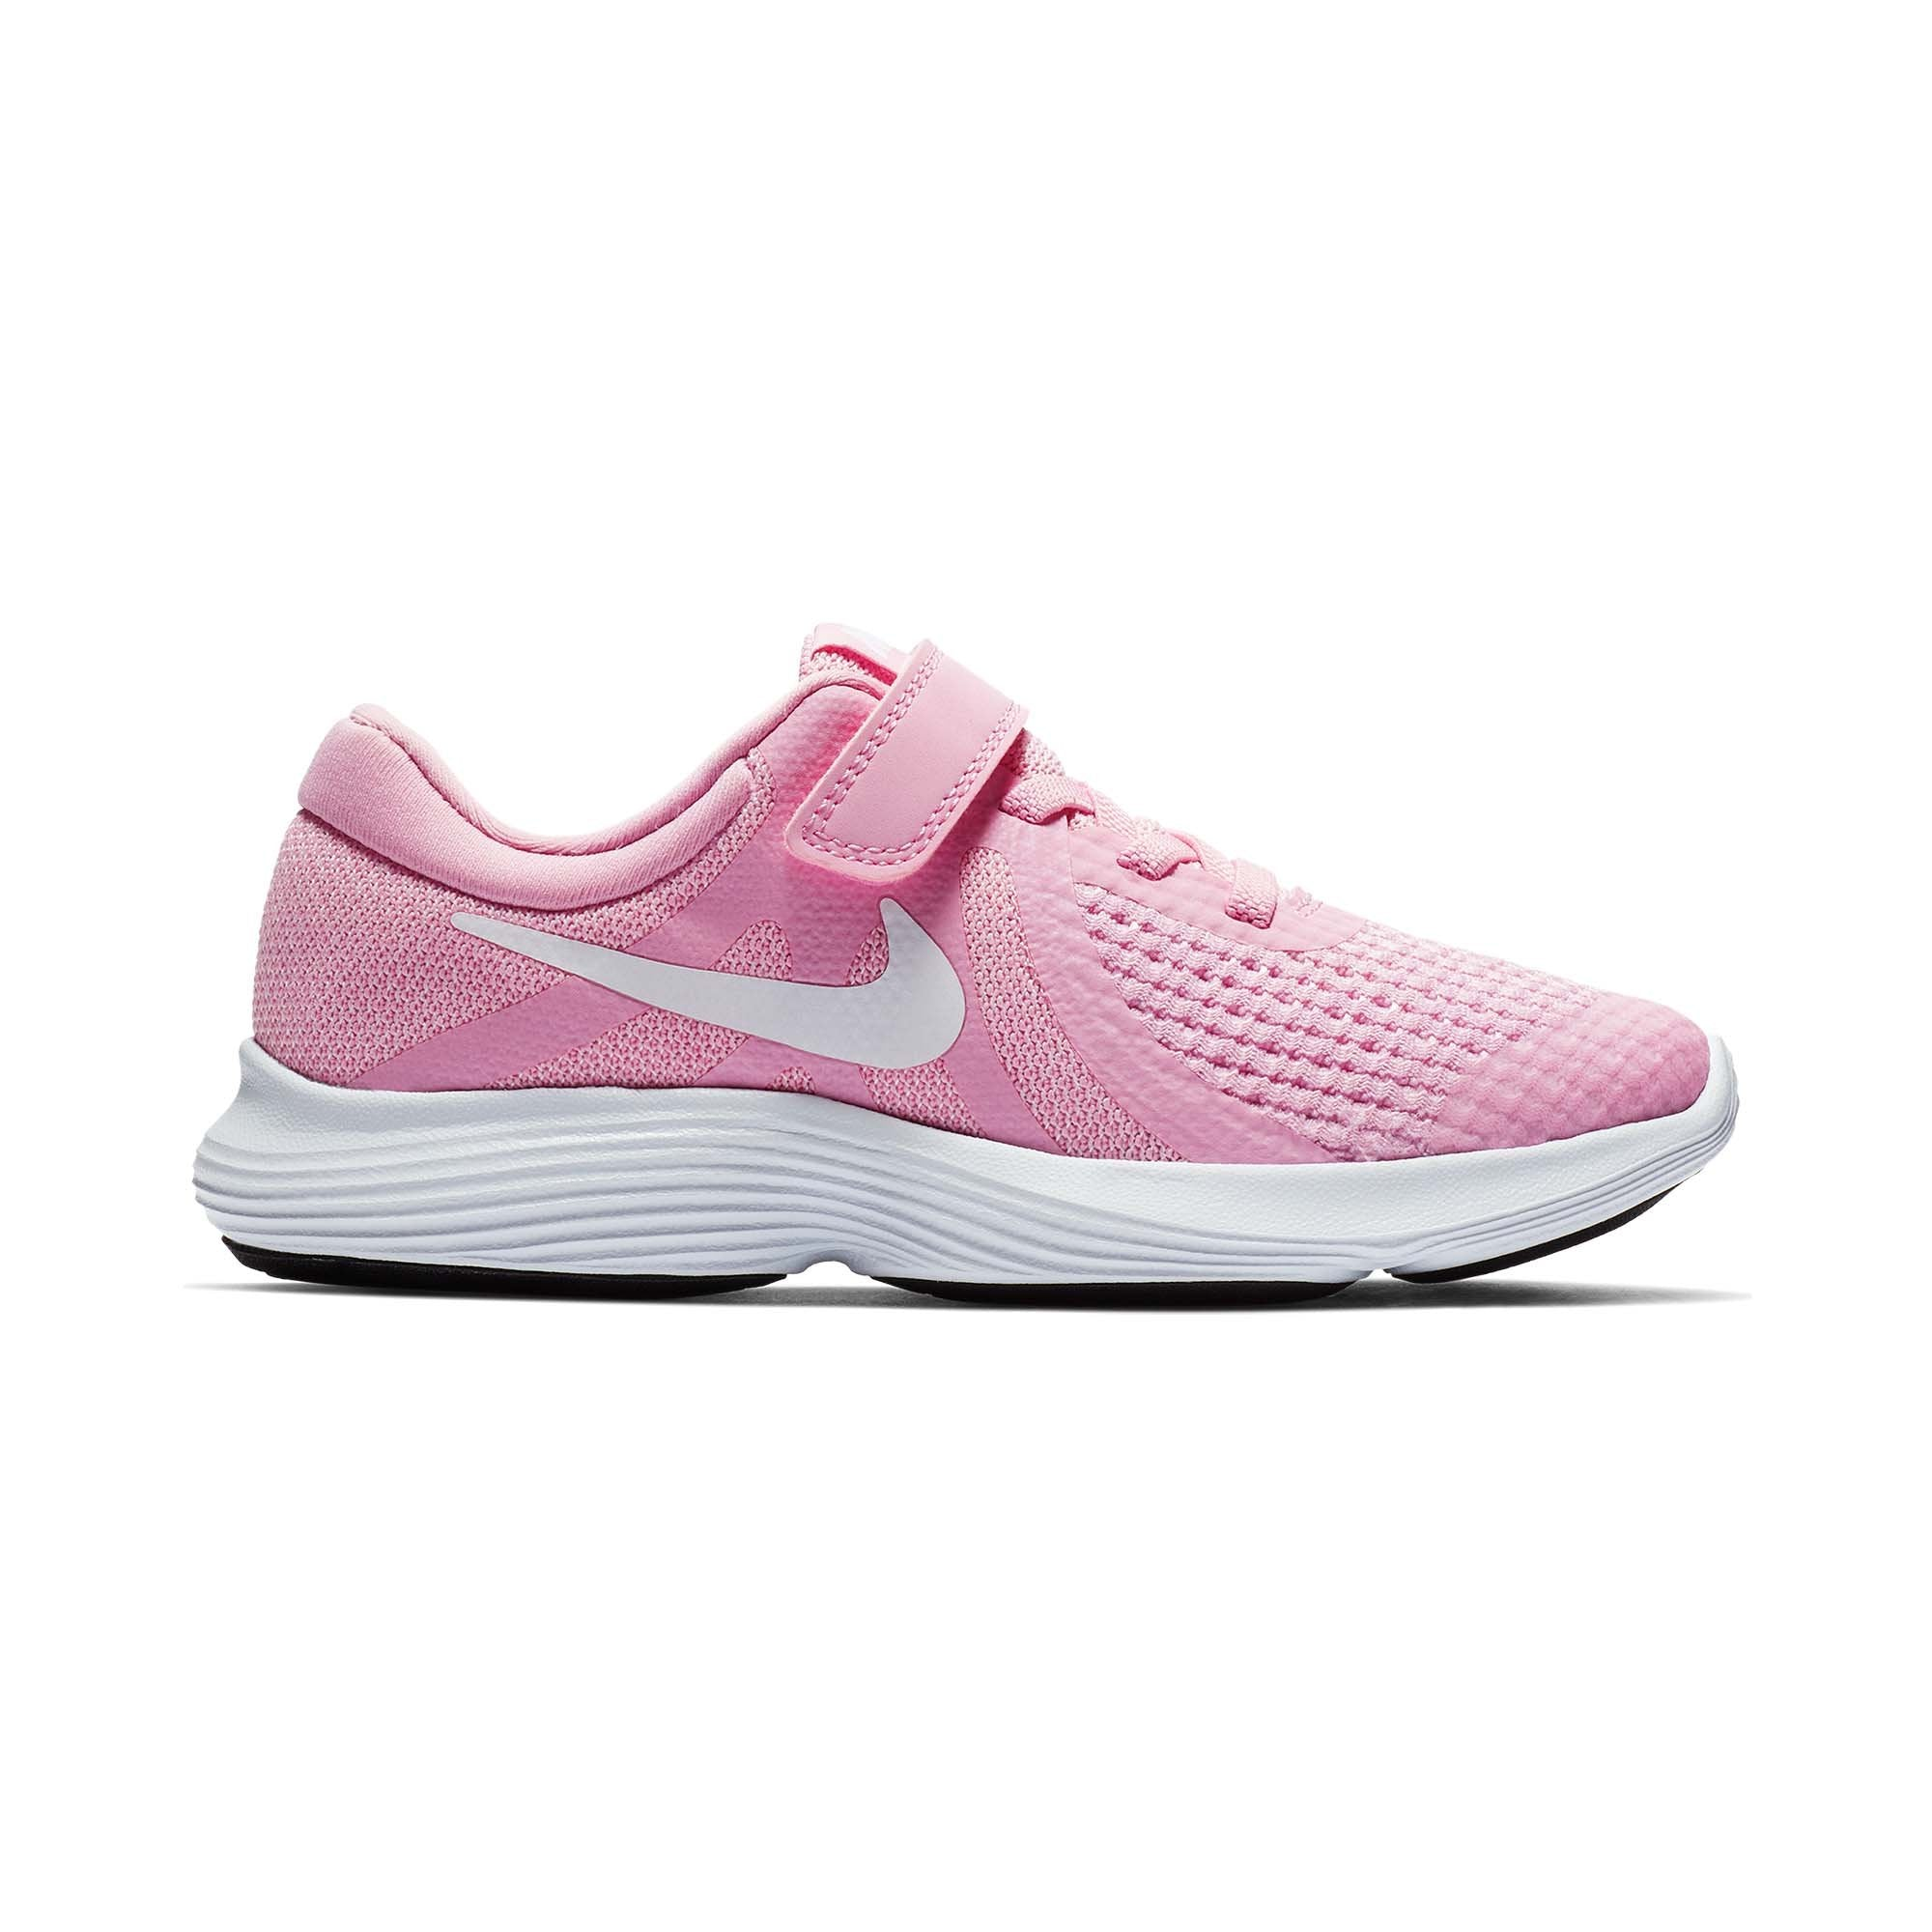 3b7bf1ecdc6915 Buy Nike Girls Revolution 4 Pre-School Shoes Online in Singapore ...